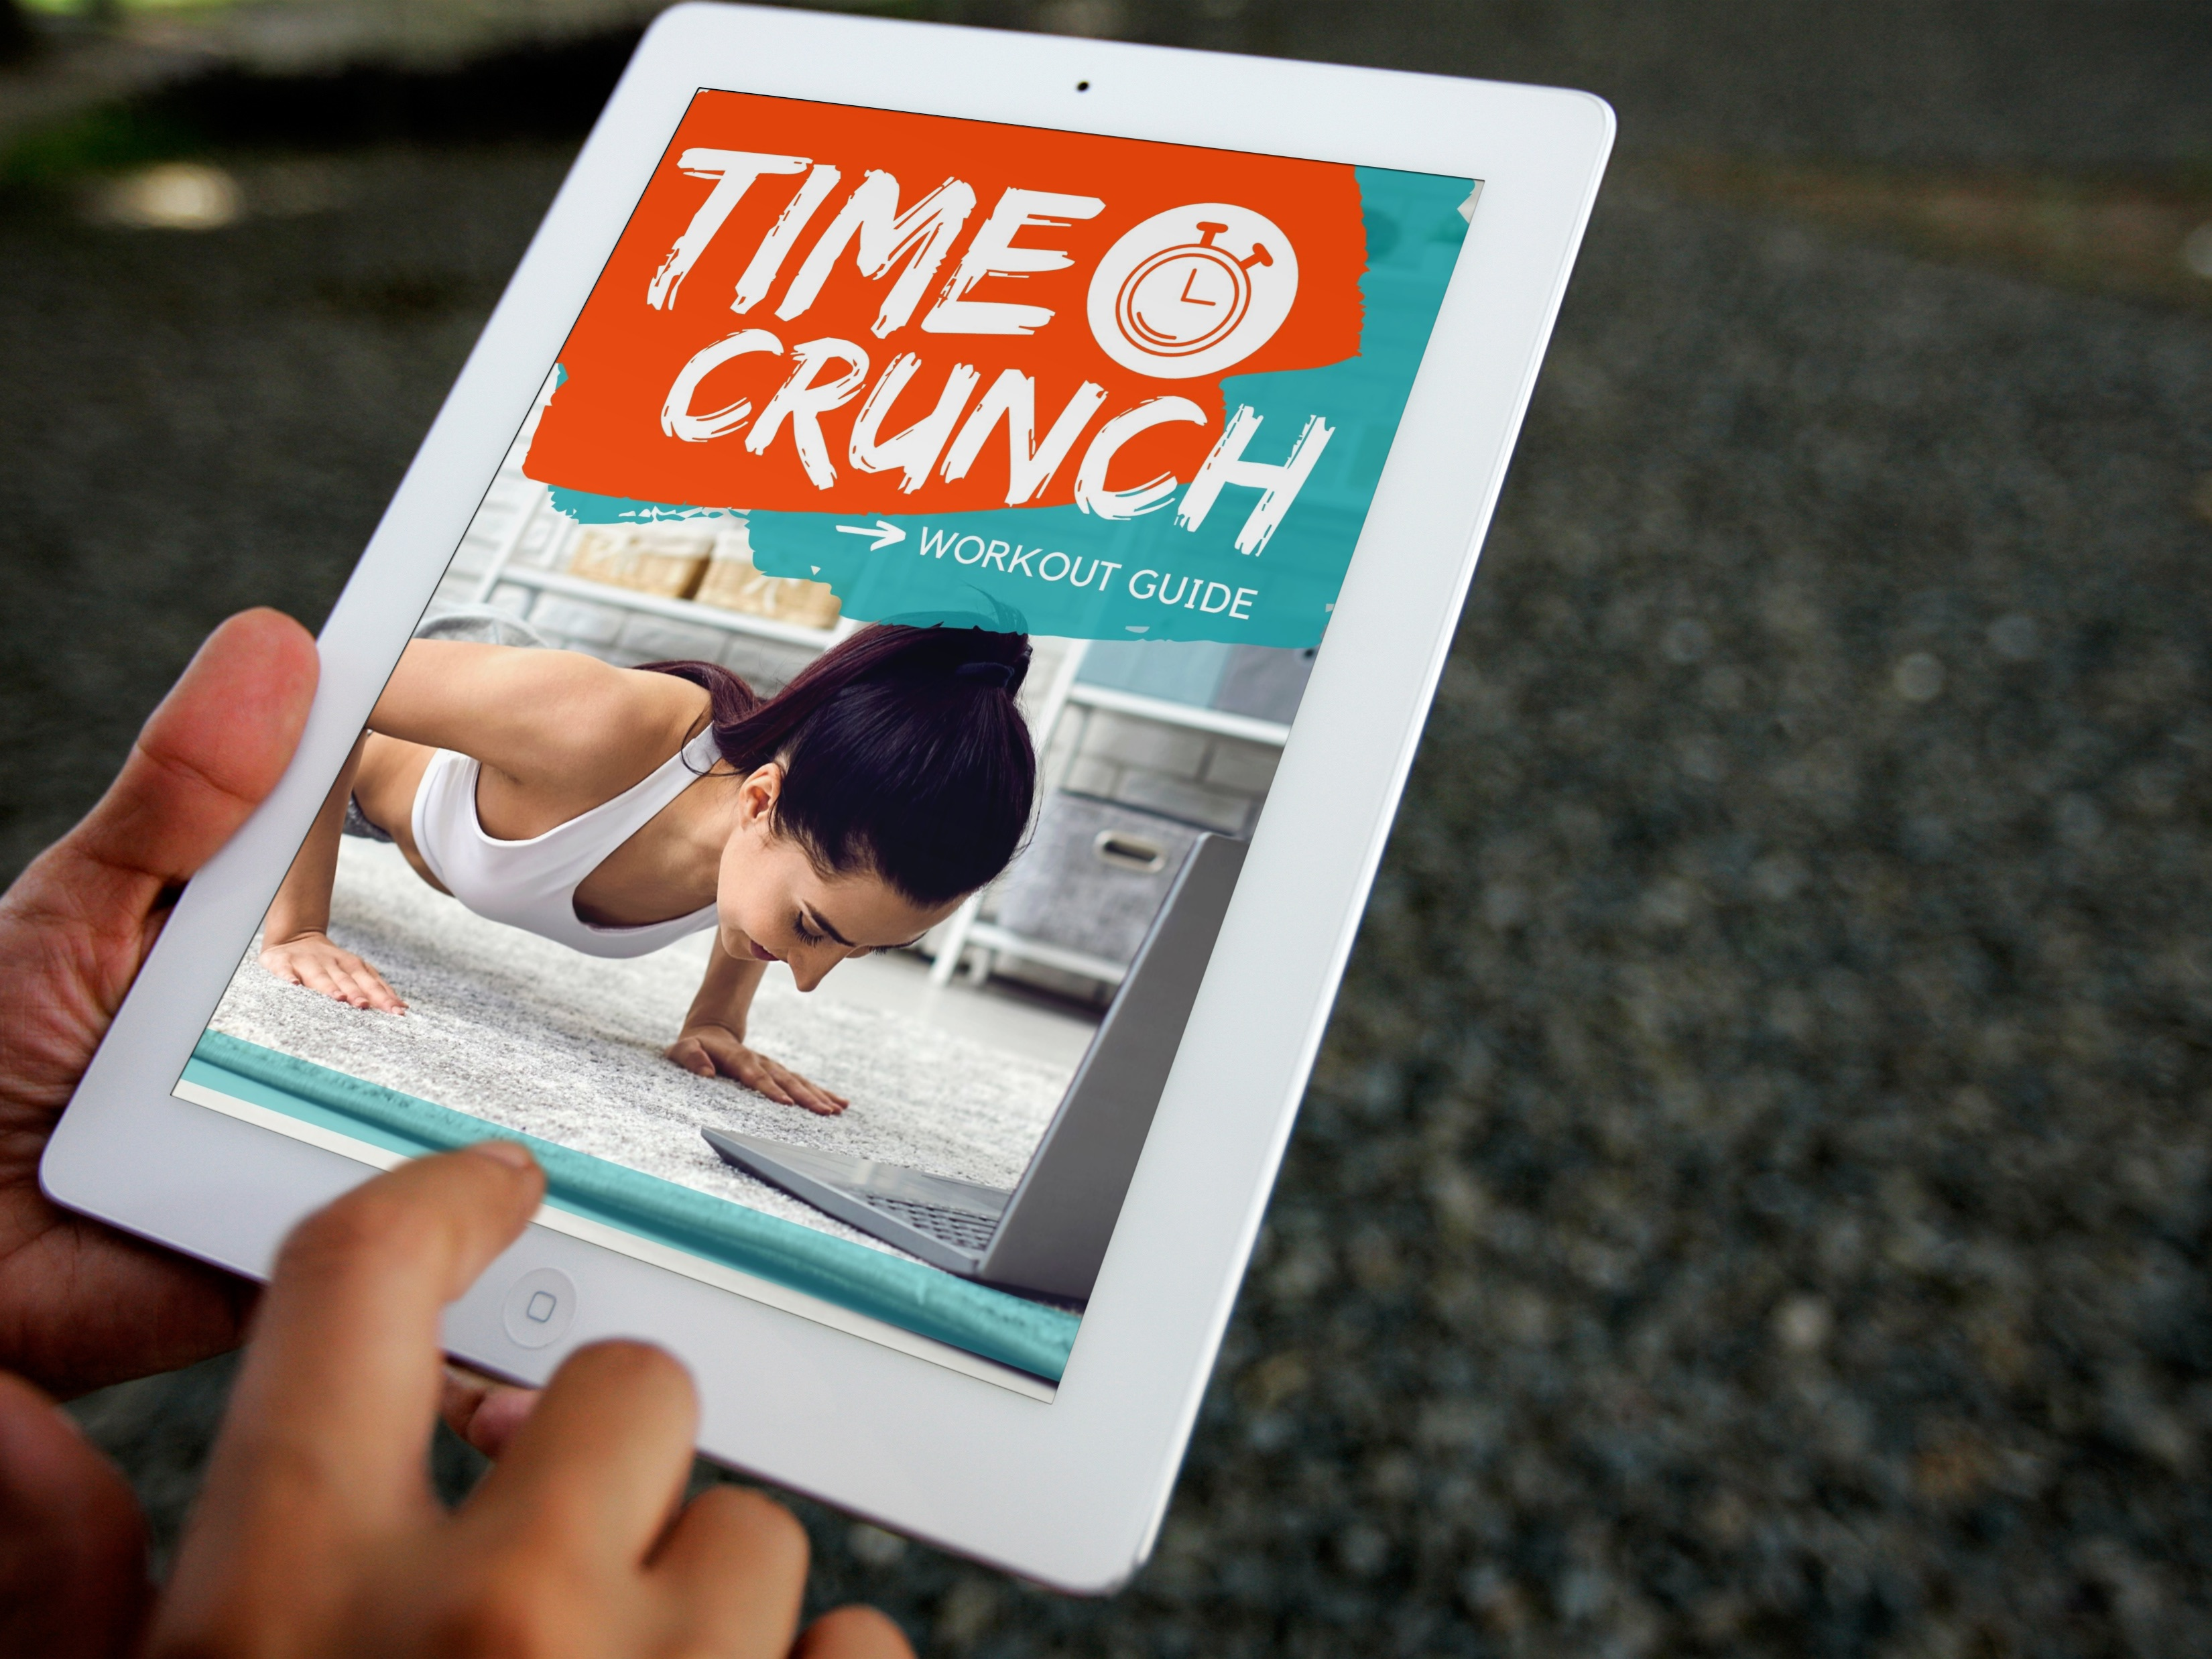 Time Crunch Workout Guide